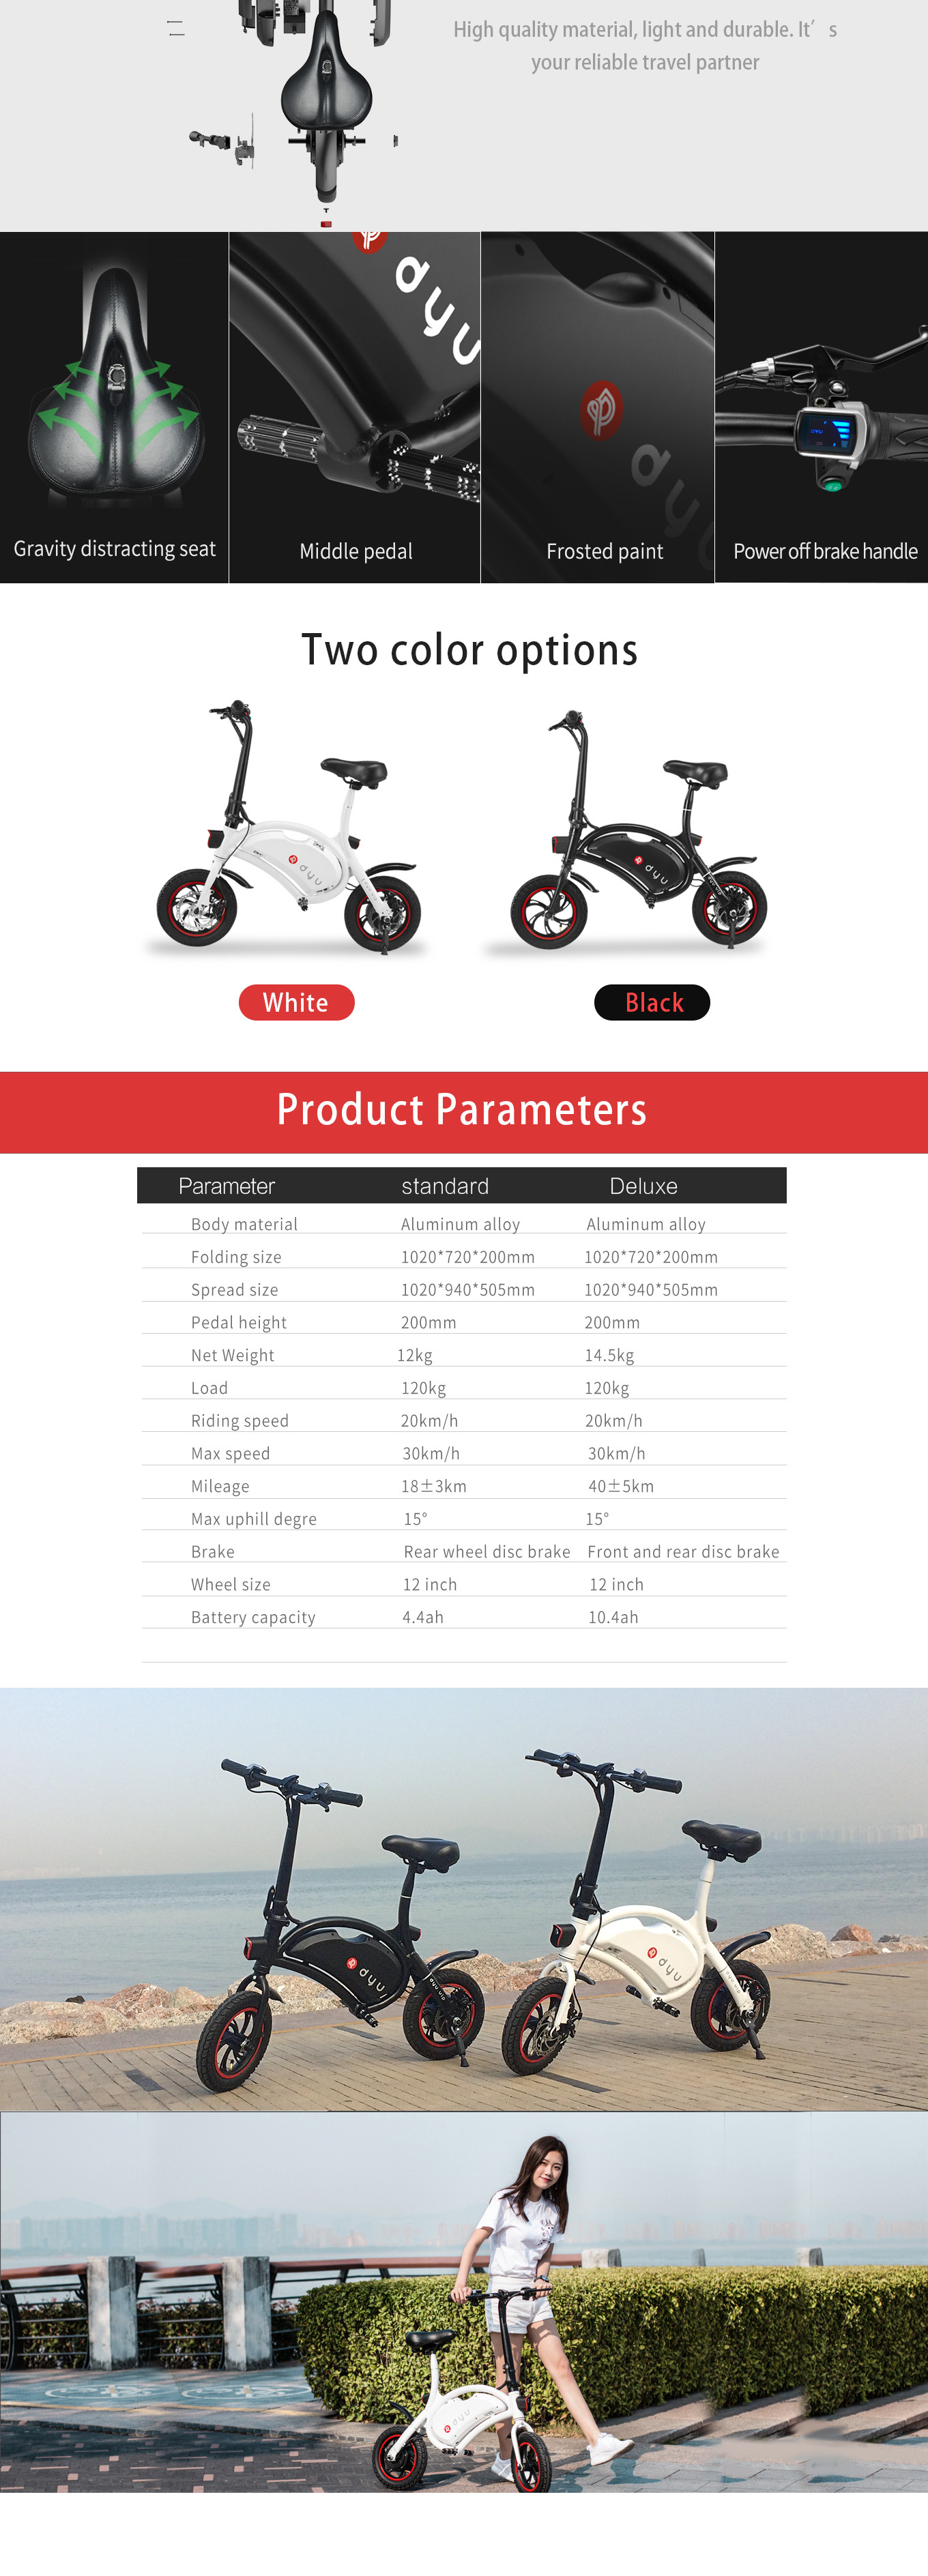 F-wheel Smart Electric Foldable Scooter Motorcycle 12inch Damping Tire 20KM/H